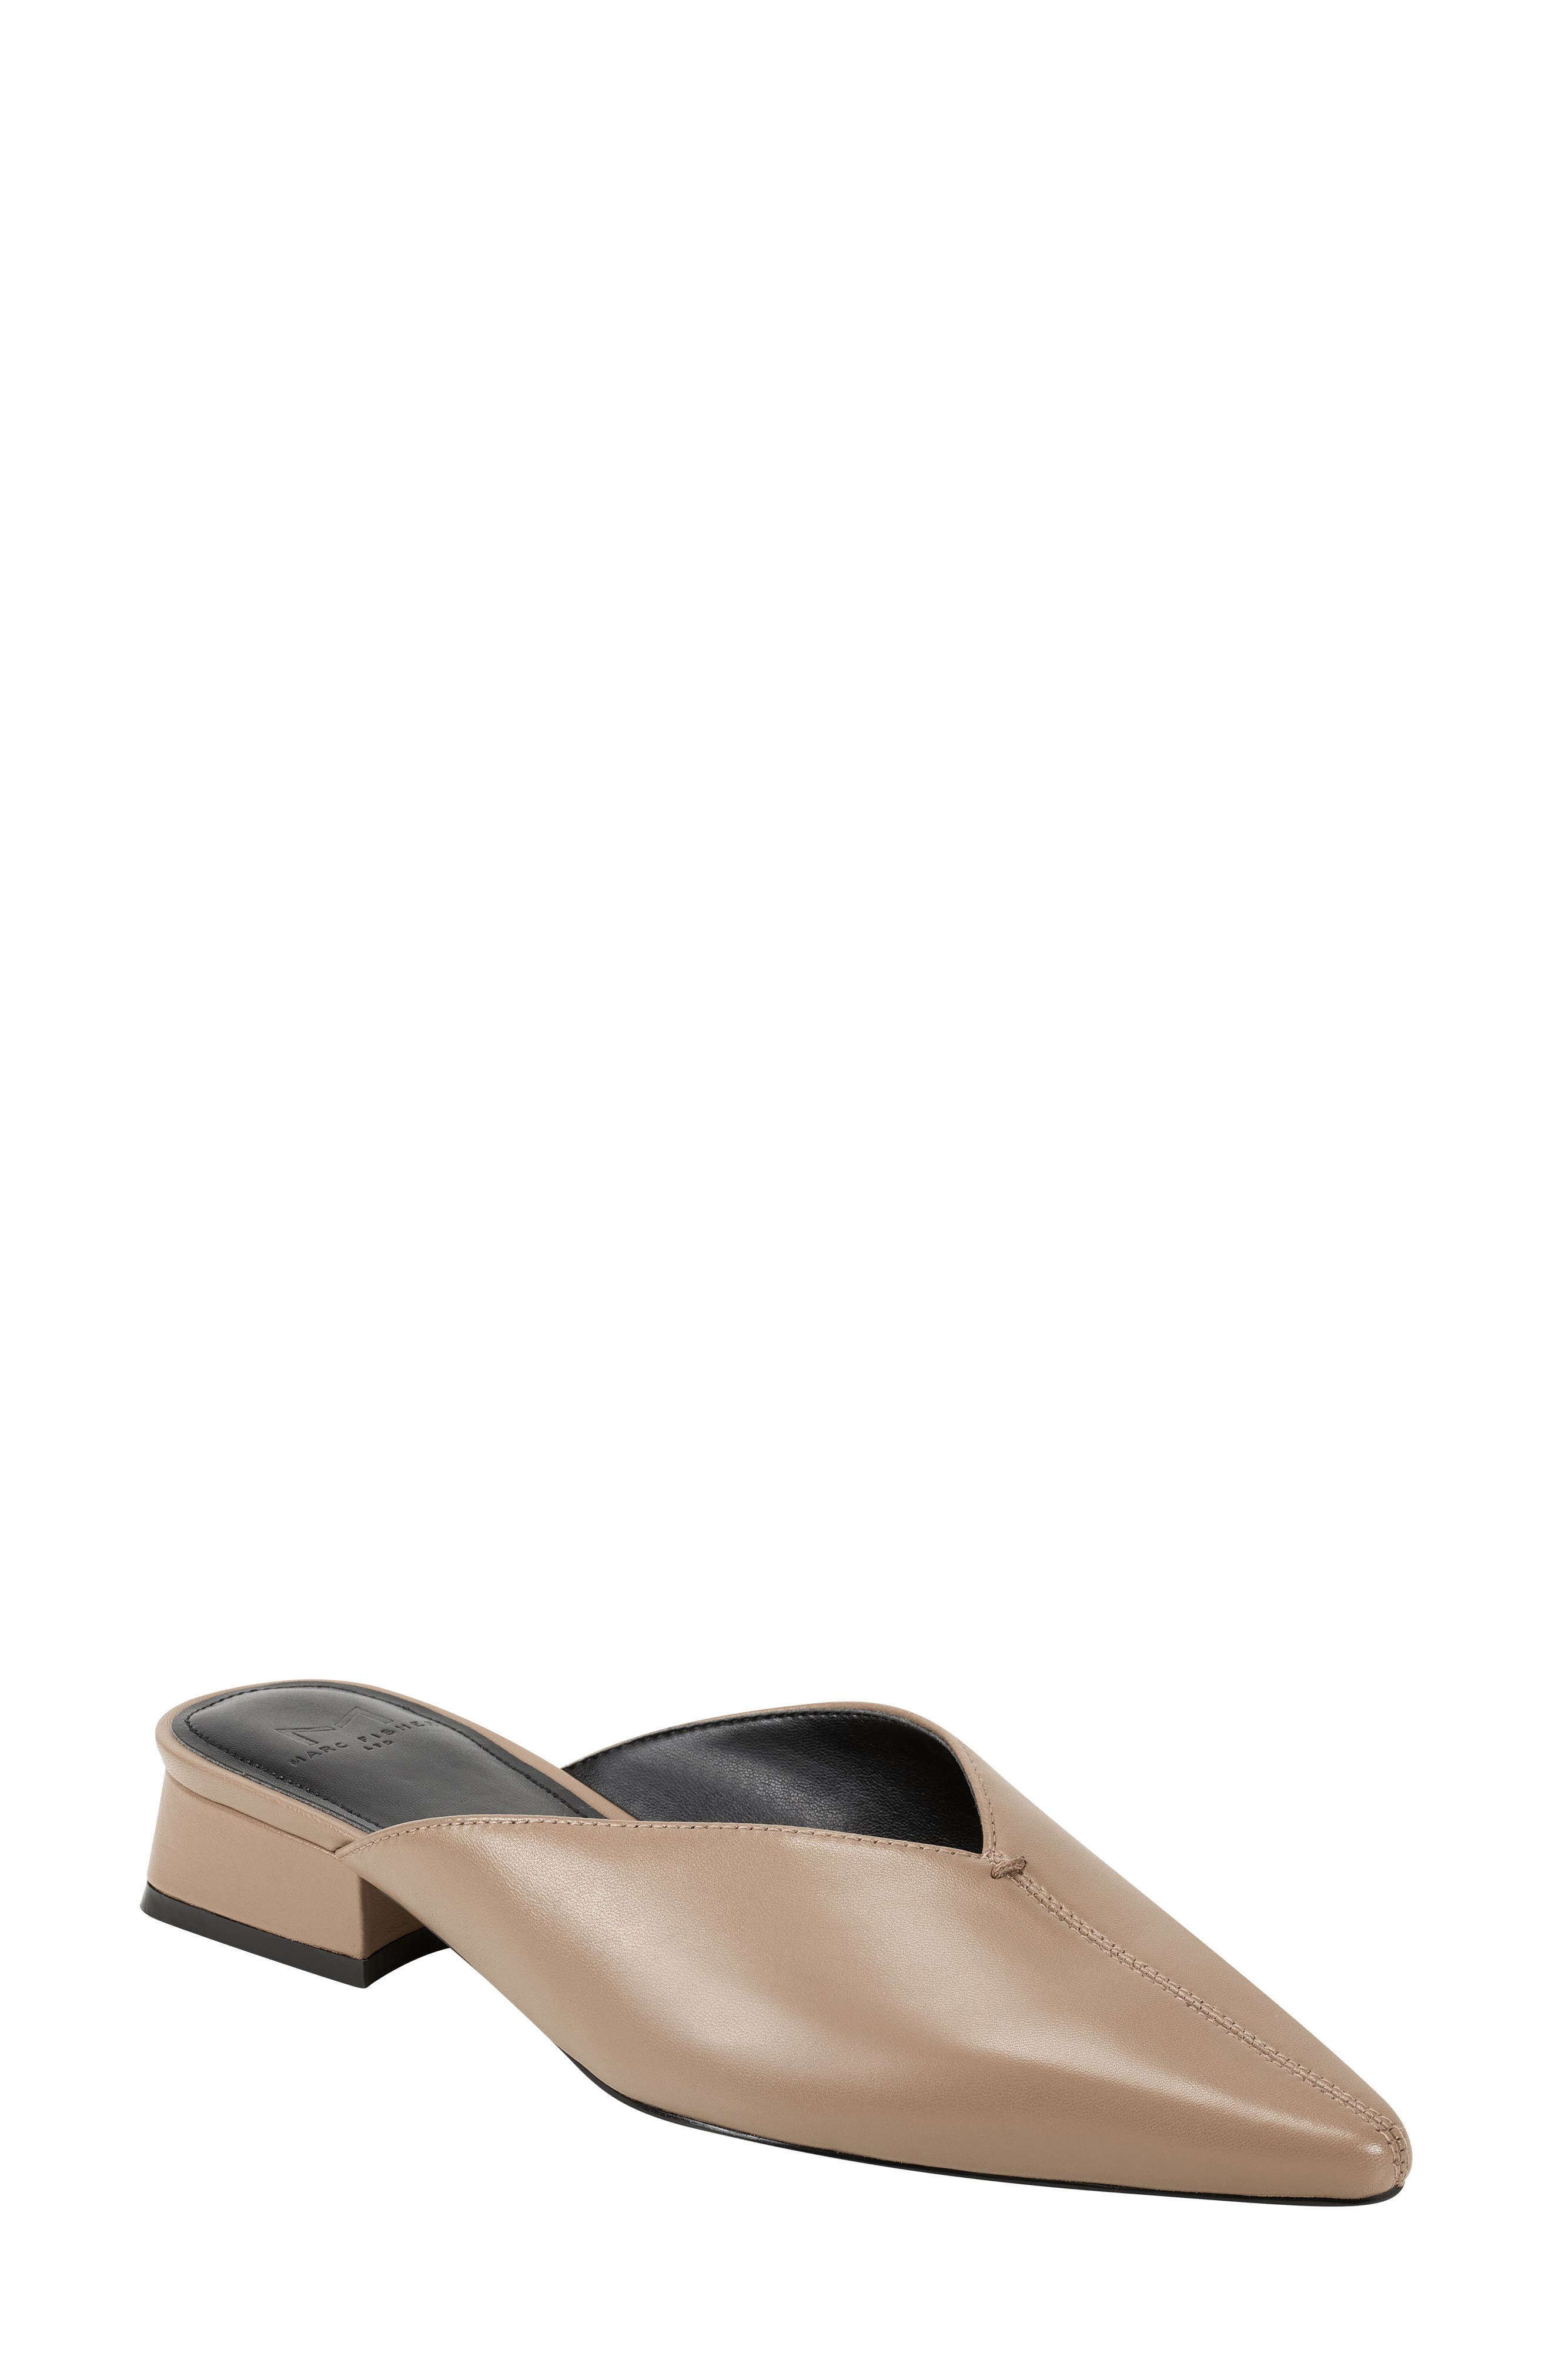 Strong lines define the contemporary style of this perfectly poised pointy-toe mule. Style Name: Marc Fisher Ltd Gilbert Mule (Women). Style Number: 6061812. Available in stores.